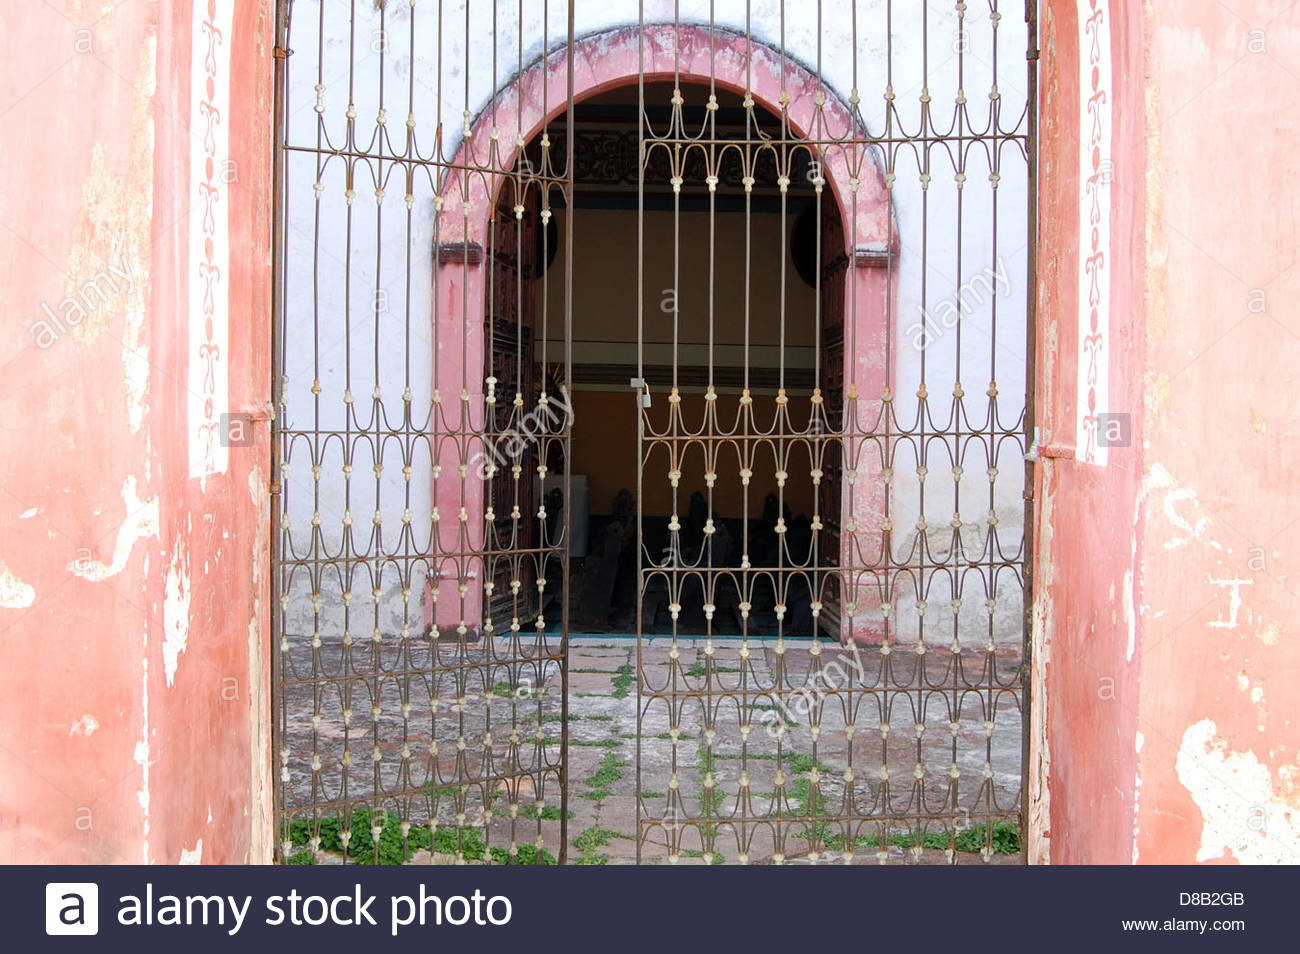 Street shot small mexican village pueblo looking into church stock photo street shot small mexican village pueblo looking into church arched door through steel gate stone patio eventelaan Image collections